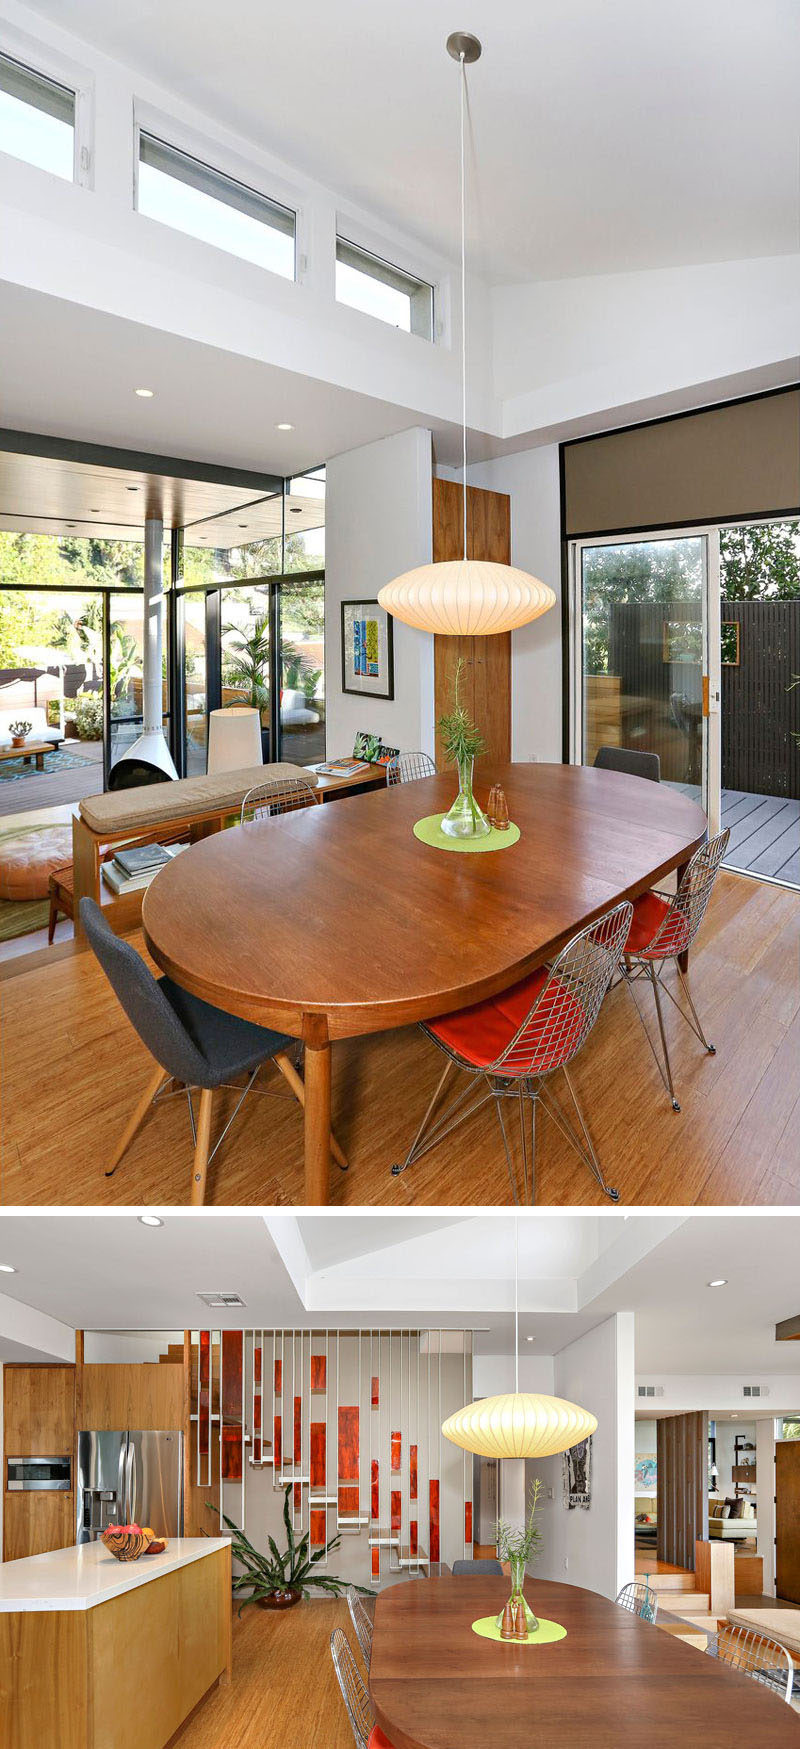 In this contemporary house, the dining room and kitchen sit slightly raised from the living room. Clerestory windows add additional sunlight to the space, while a single pendant light hangs from the ceiling. #DiningRoom #Windows